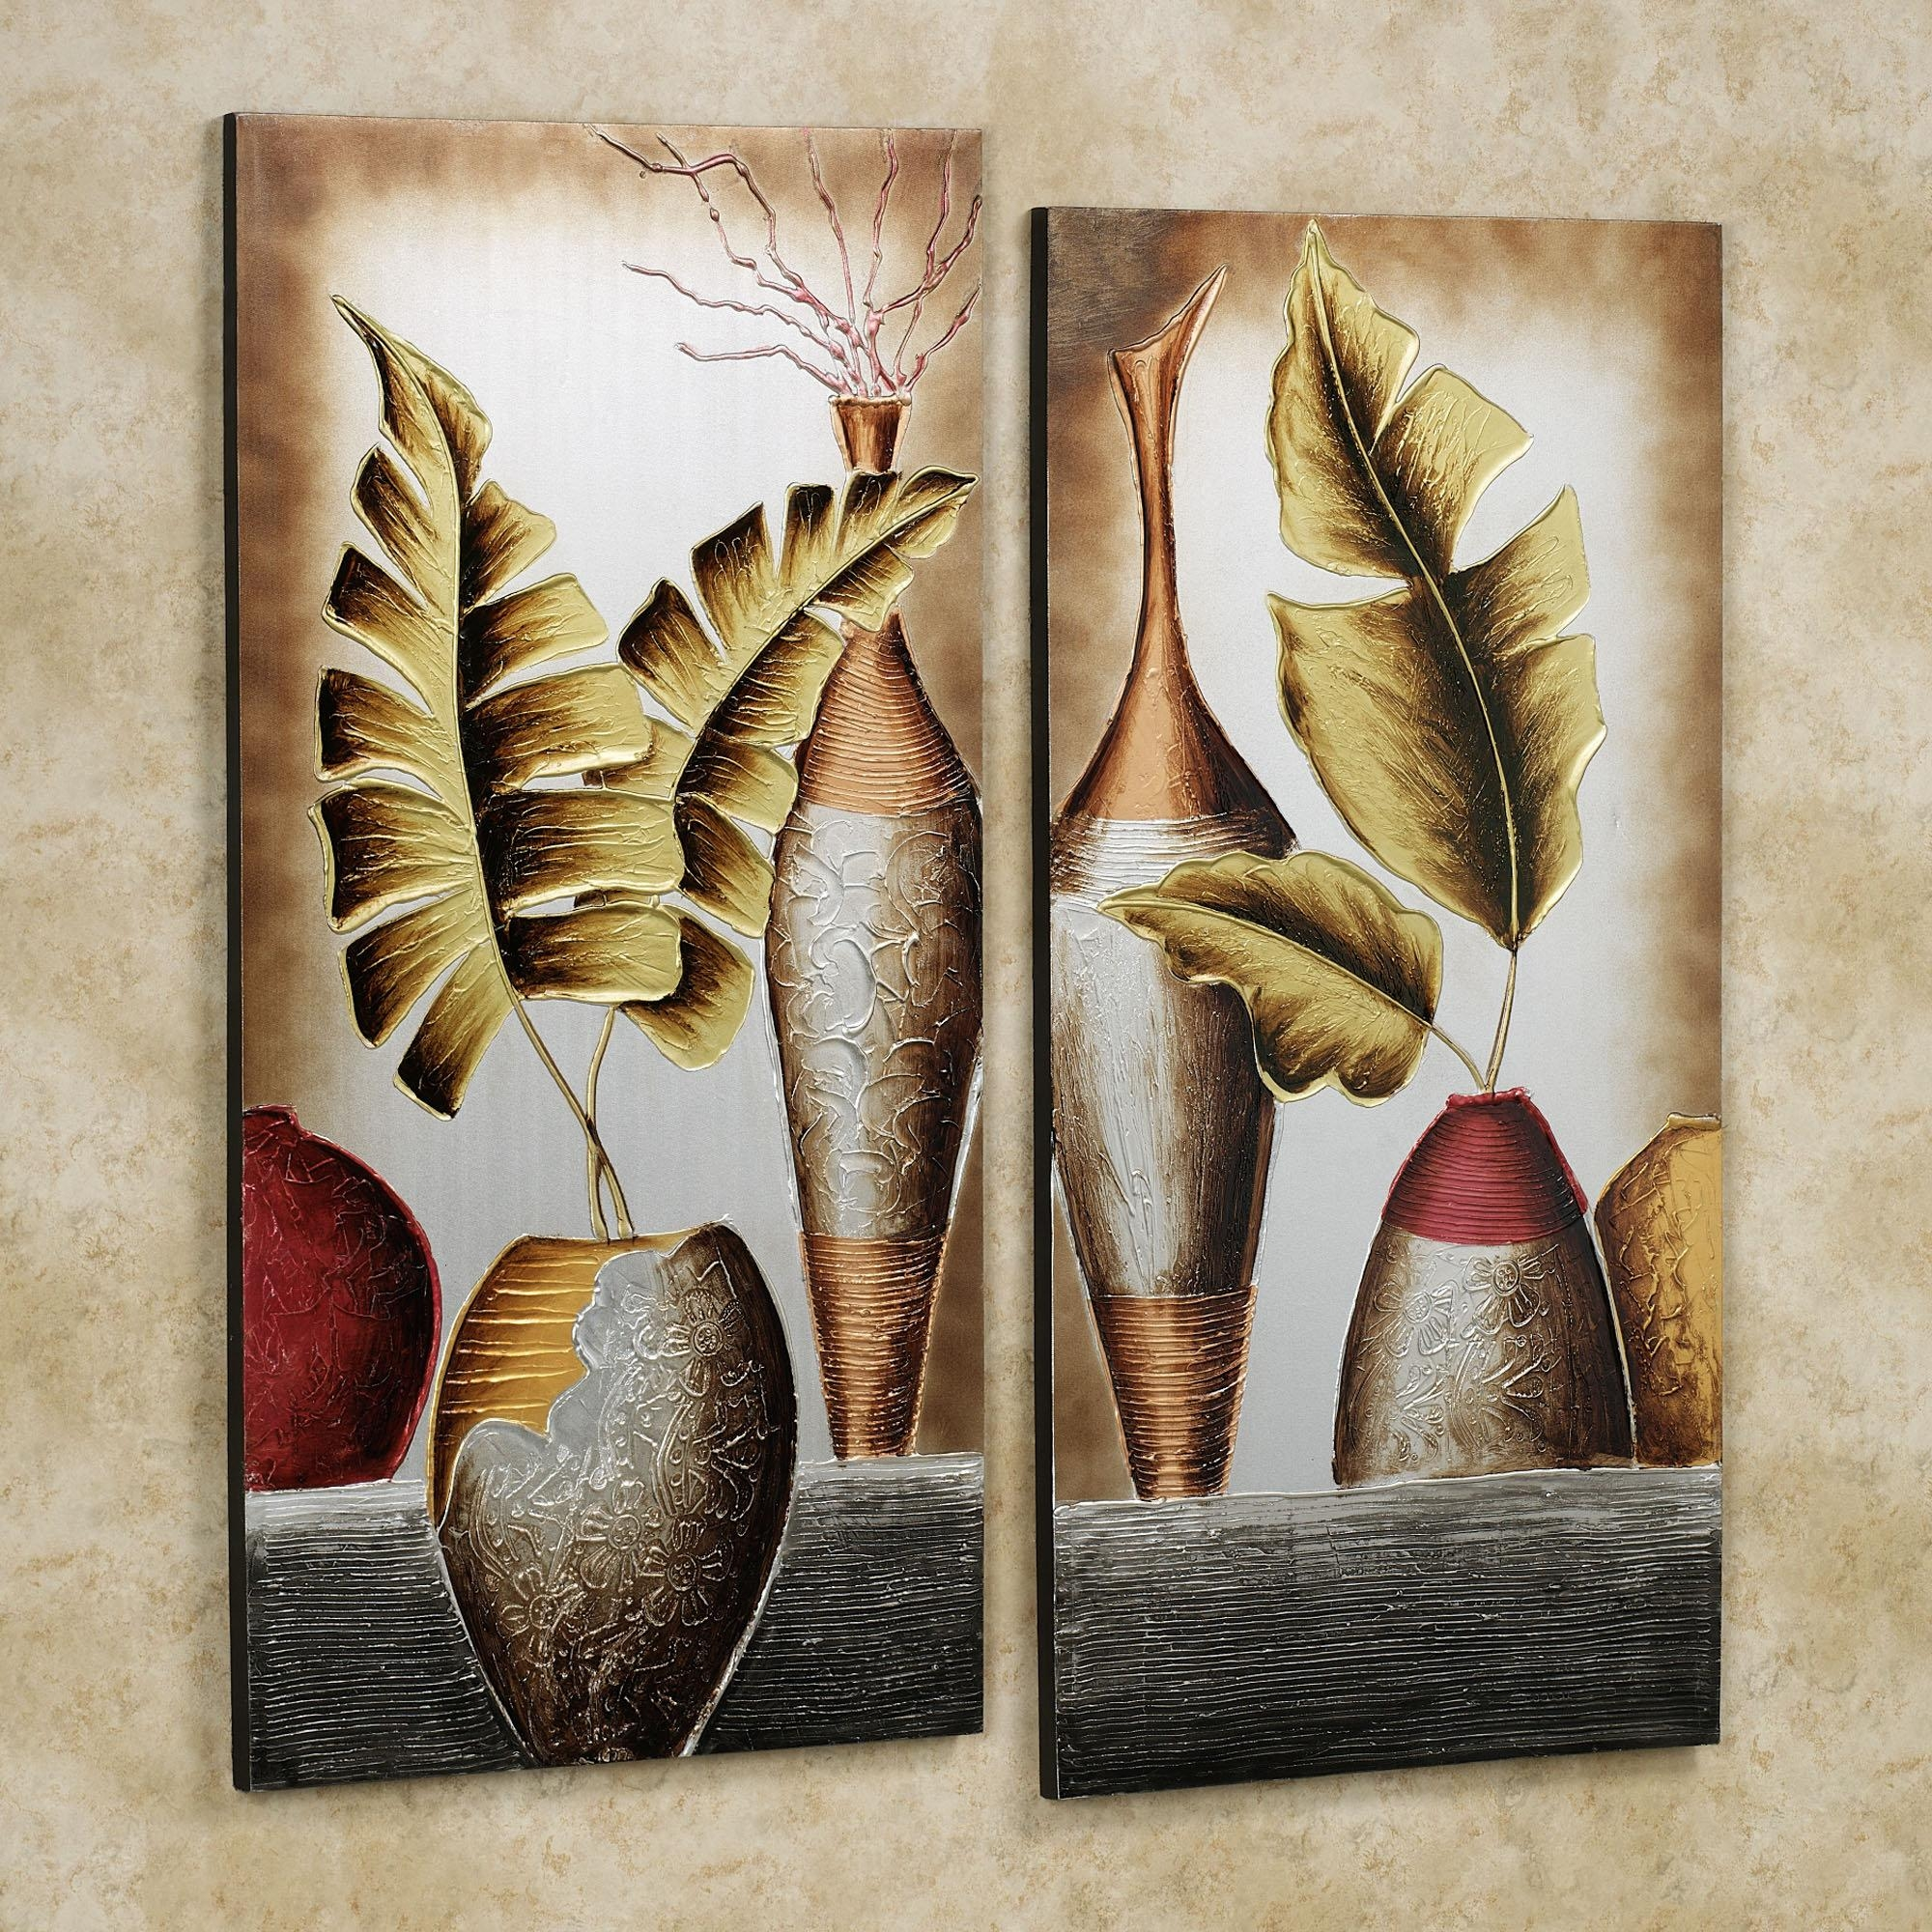 Wall Art Designs: Sensational High Quality Pictures Of Canvas Sets In Cheap Wall Art Sets (Image 14 of 20)